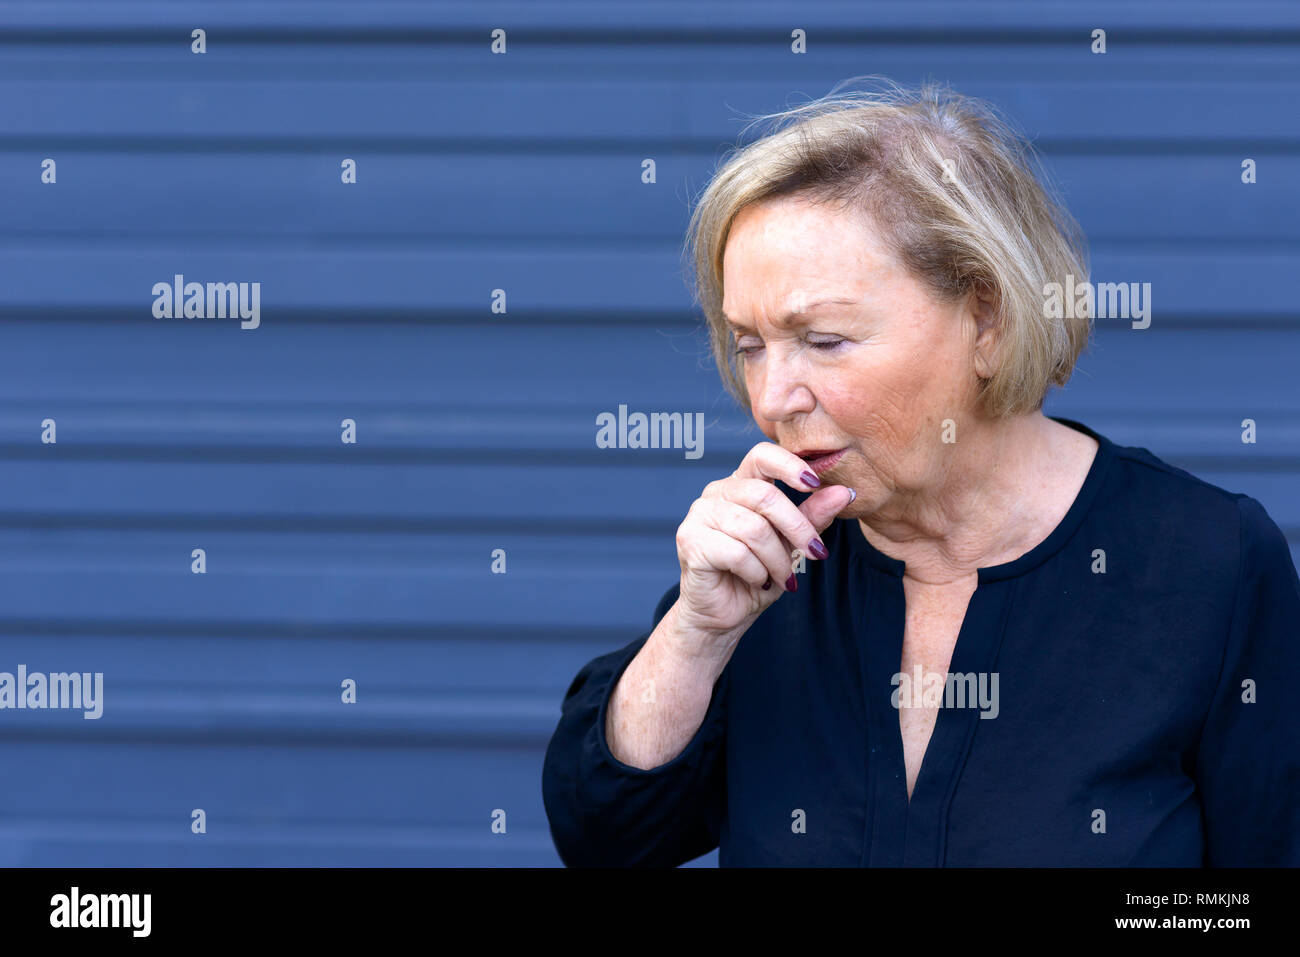 Unwell elderly lady having a coughing fit holding her hand to her mouth conceptual of seasonal flu, allergies or choking over blue with copy space - Stock Image